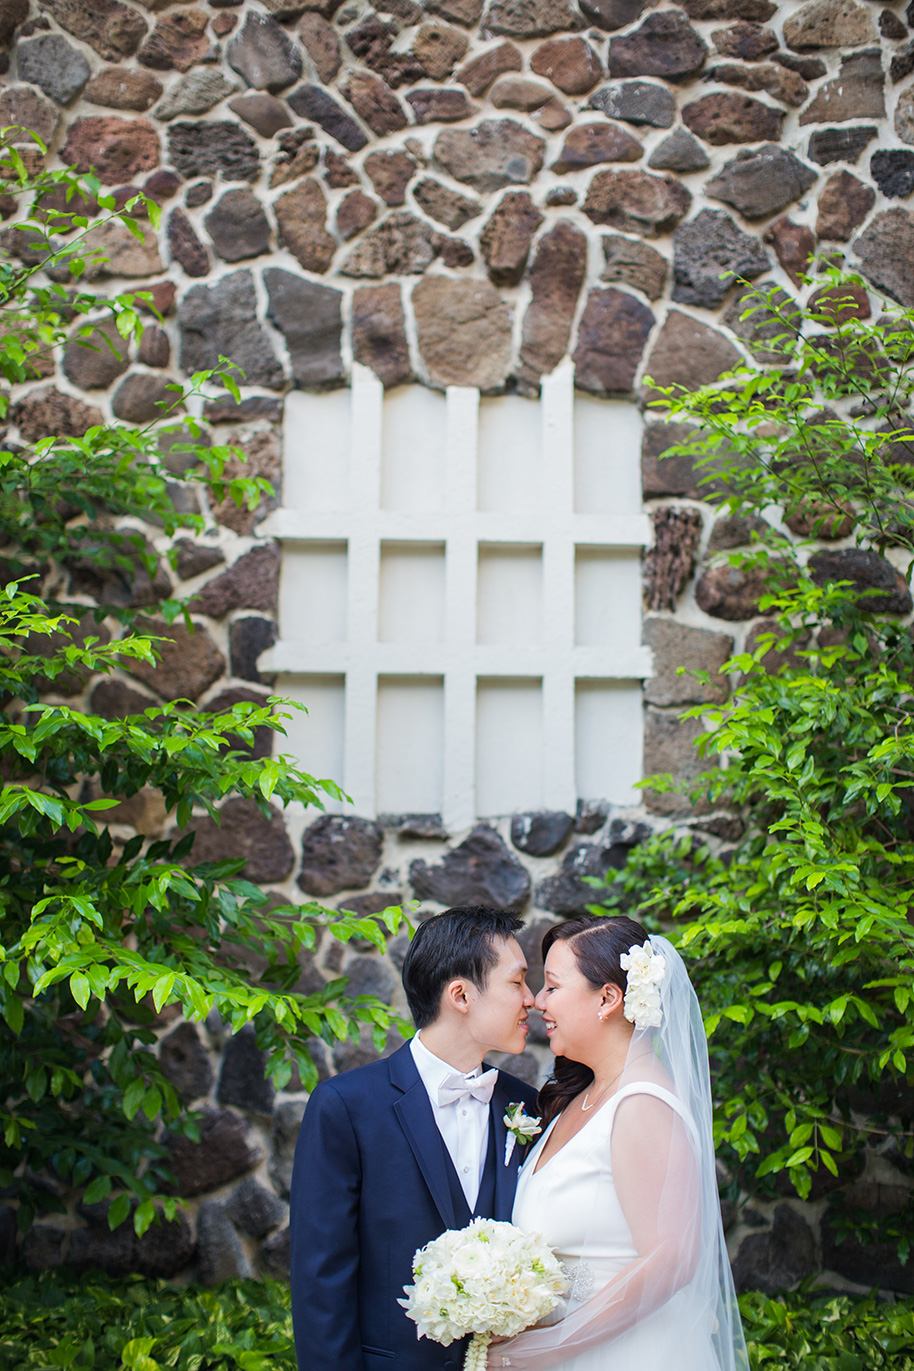 HALE-KOA-WEDDING-042616-25